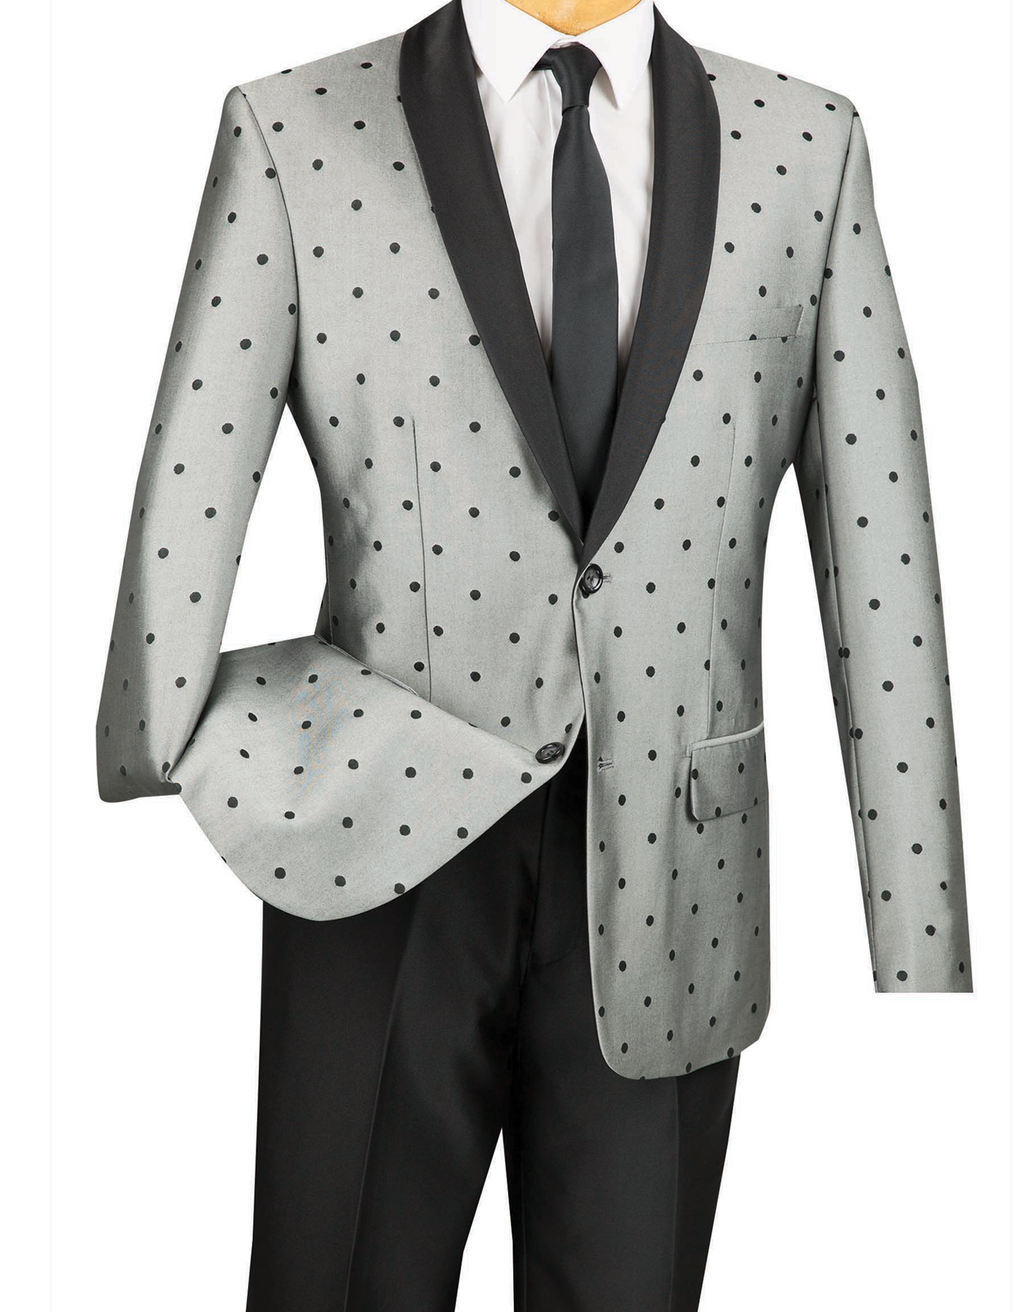 Naples Collezioni - Polka Dots Fashion Suit 2 Buttons 2 Piece Slim Fit Gray - Mens Suits